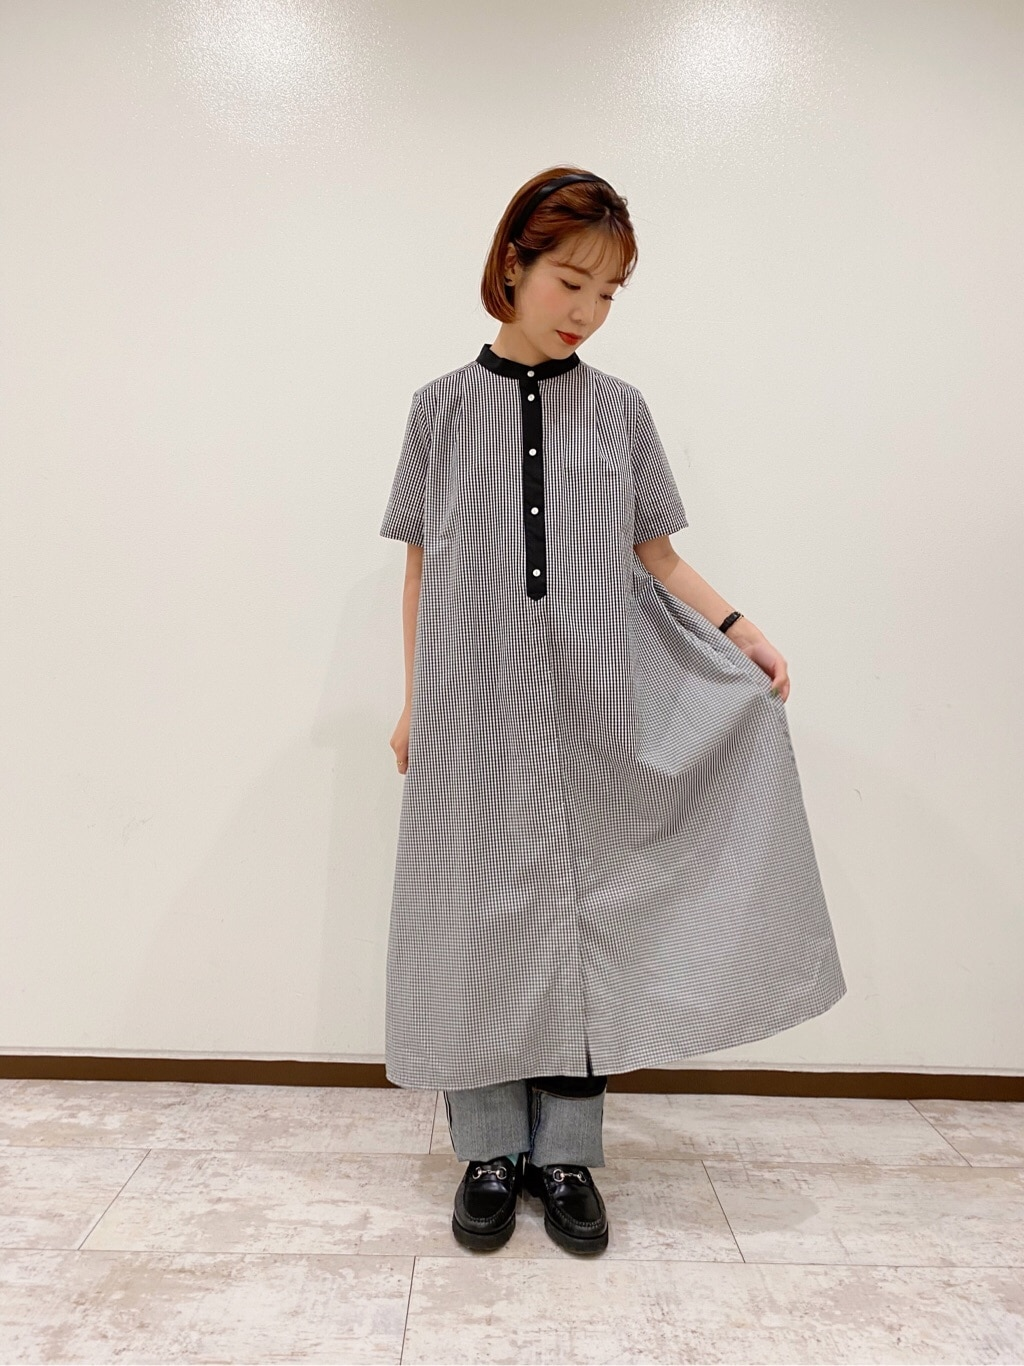 Dot and Stripes CHILD WOMAN 新宿ミロード 身長:153cm 2020.03.31